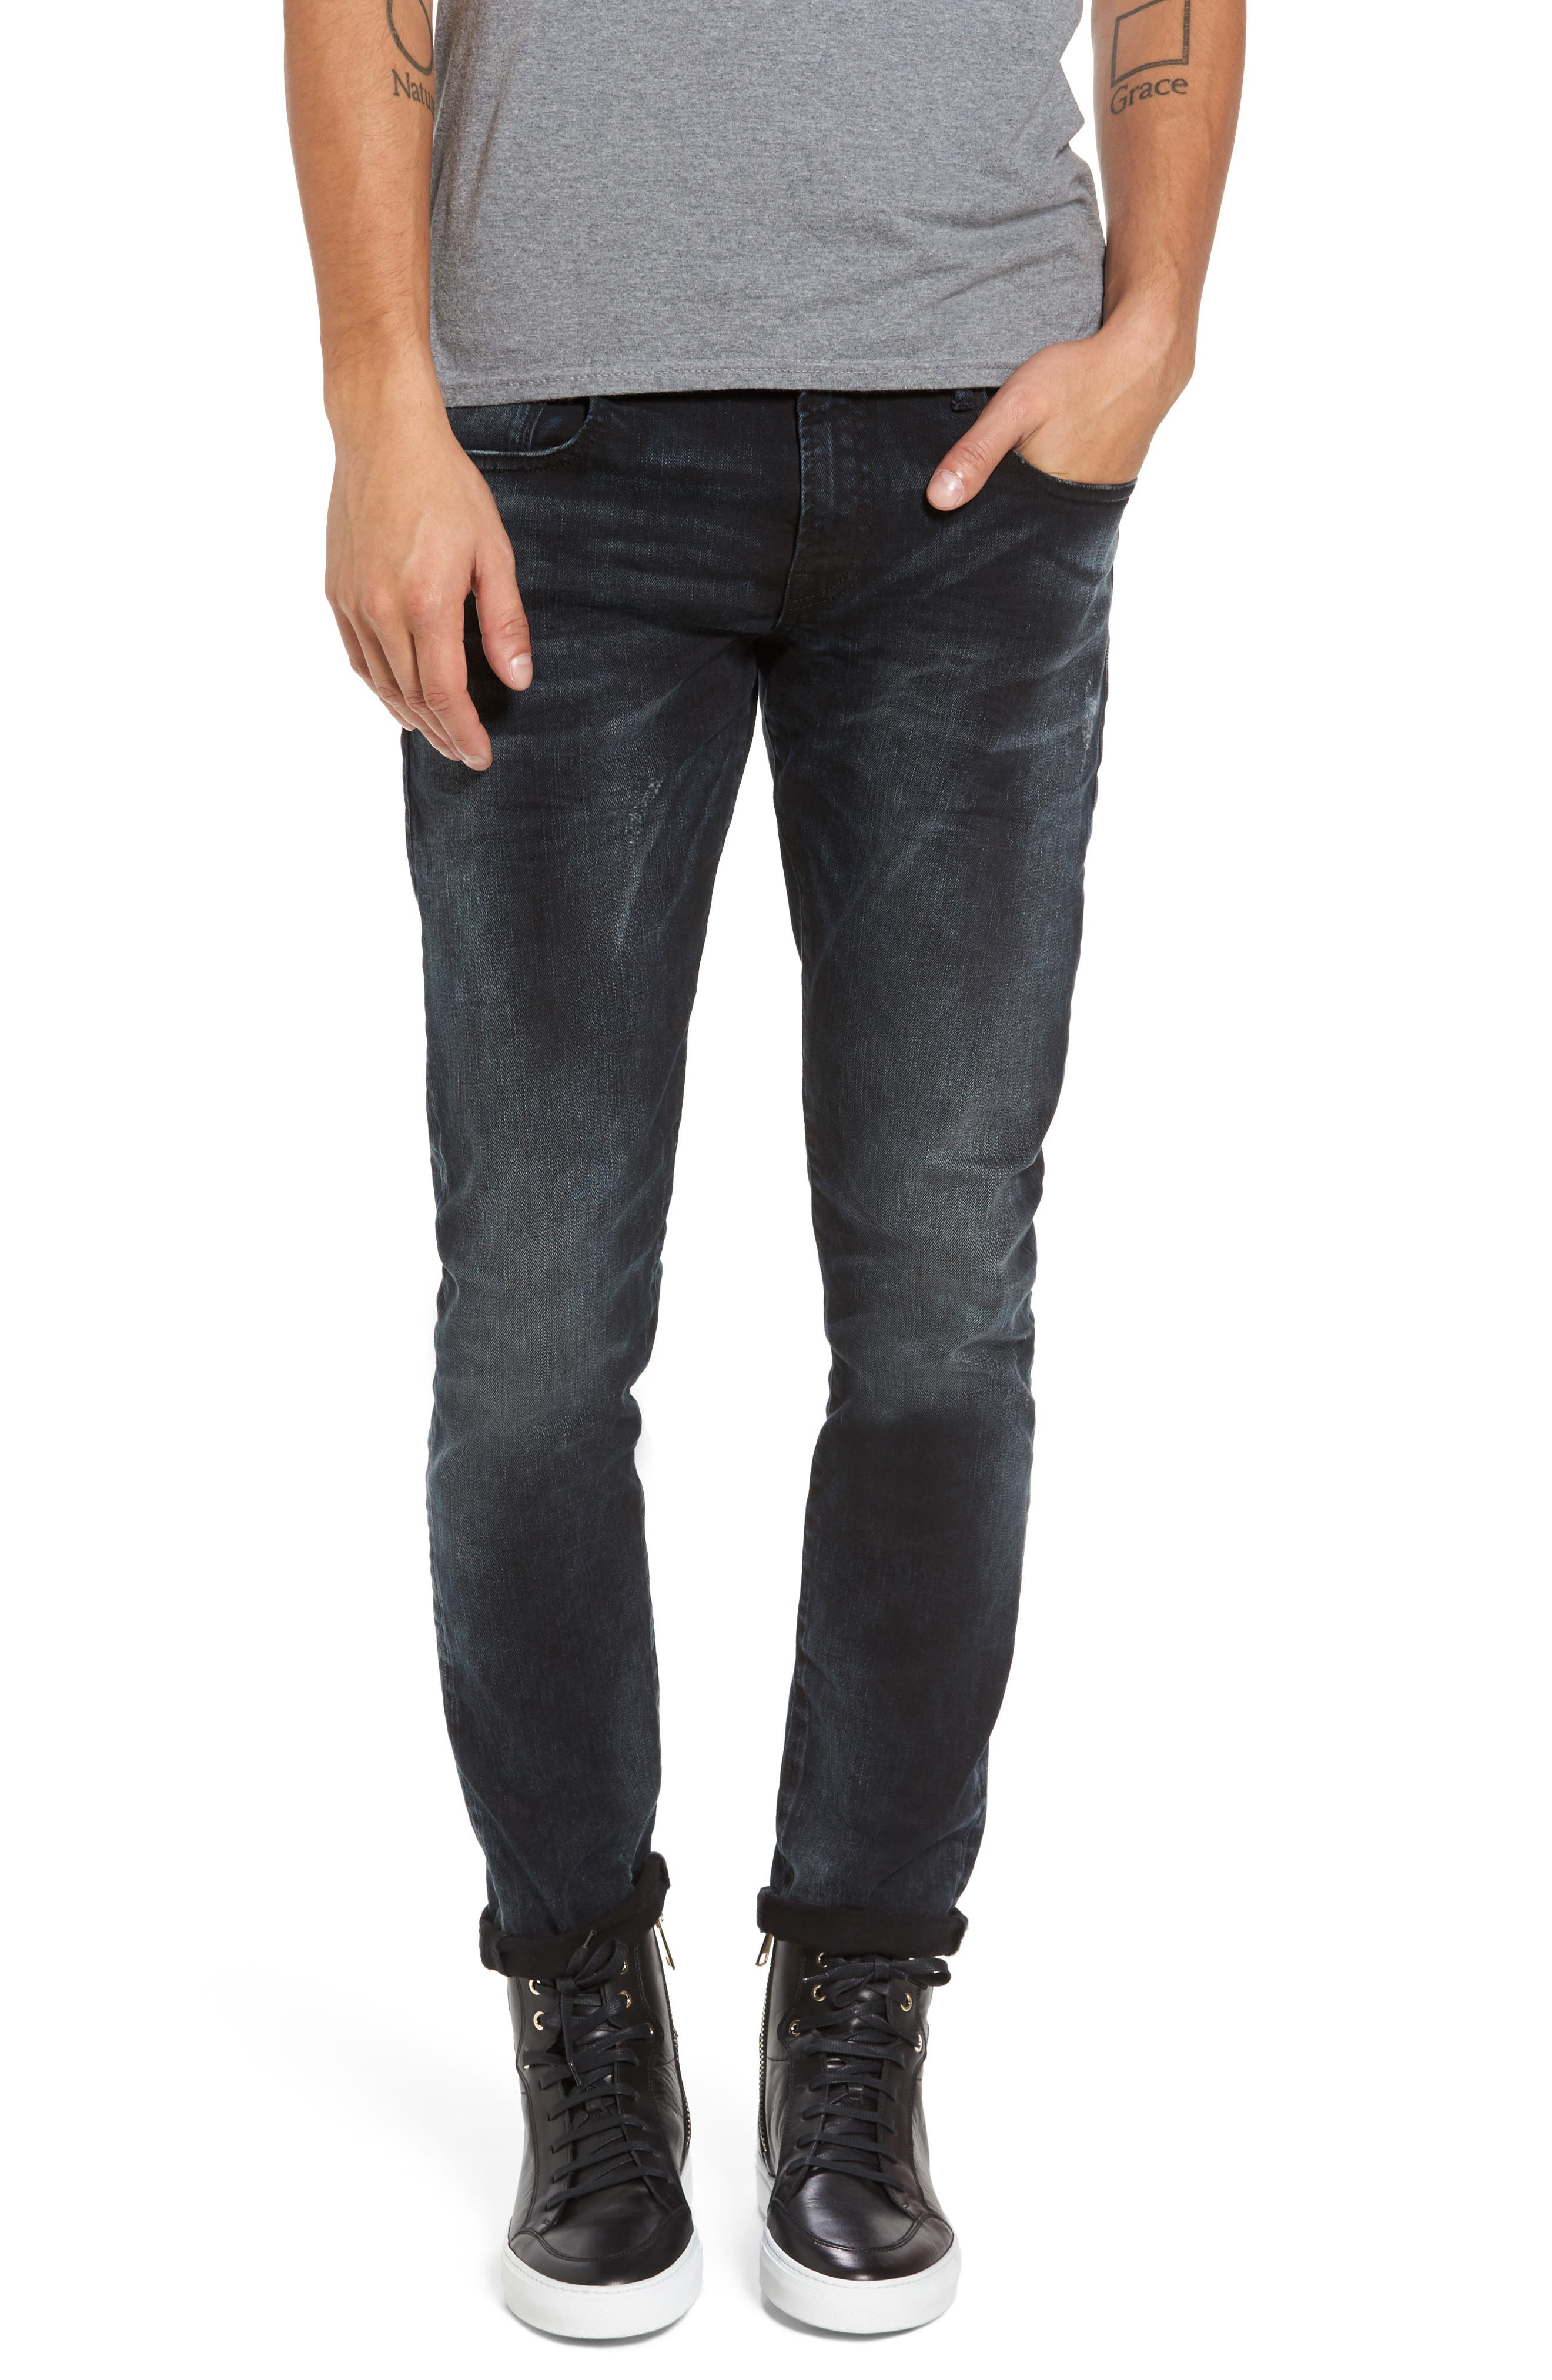 Tye Slim Fit Jeans,                         Main,                         color, Sander